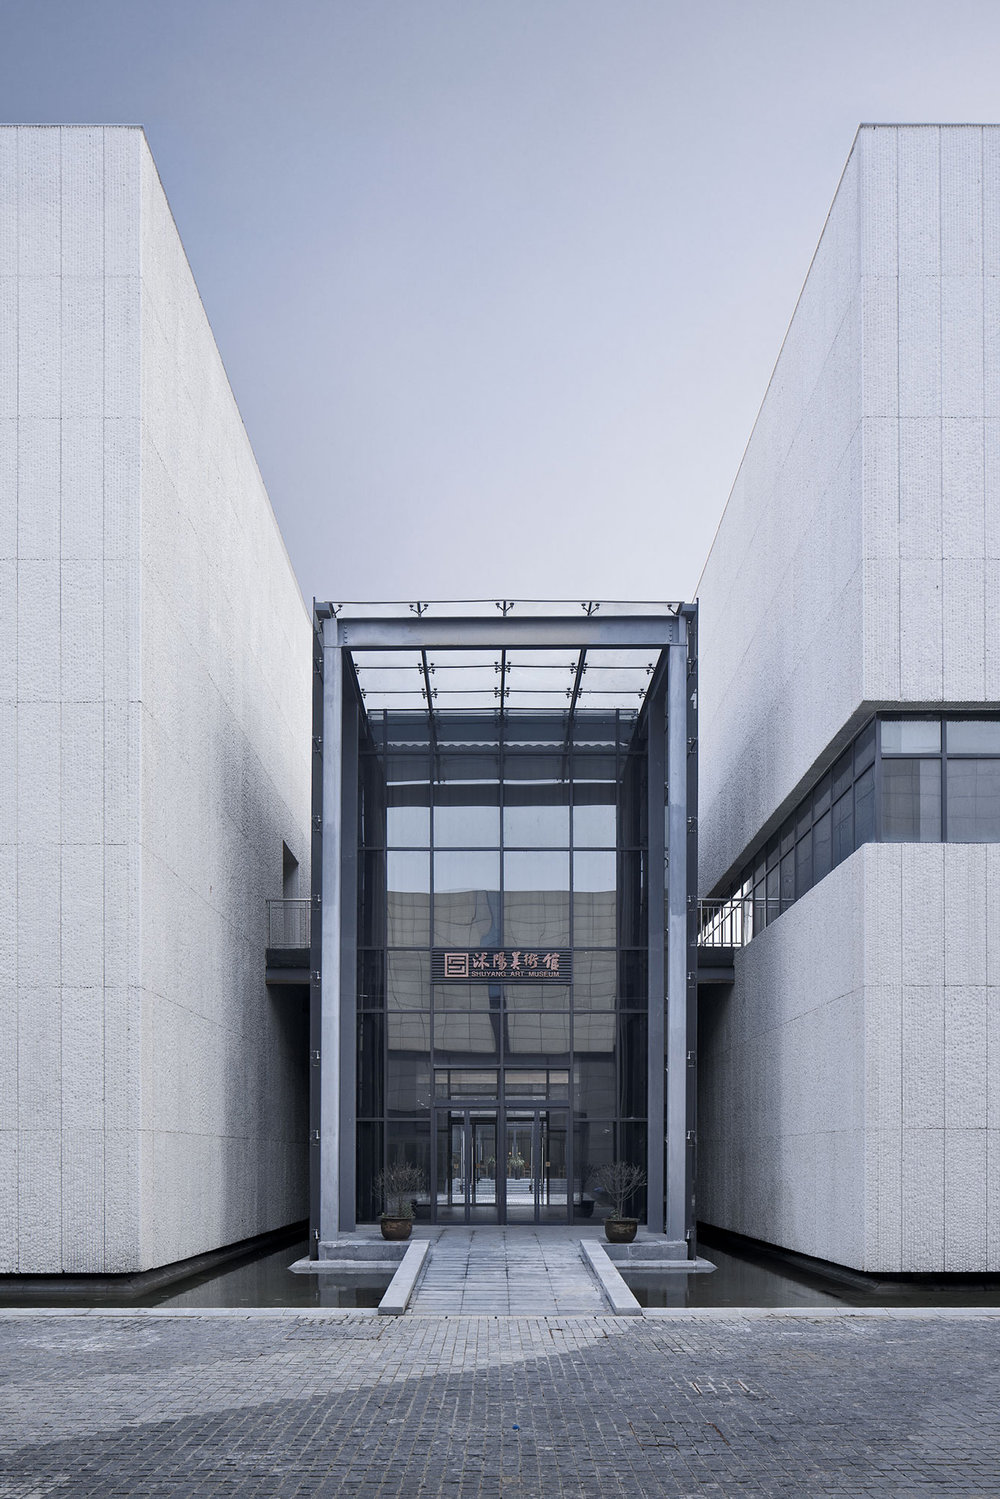 shuyang-art-gallery-uad-13-secondary-entrance.jpg